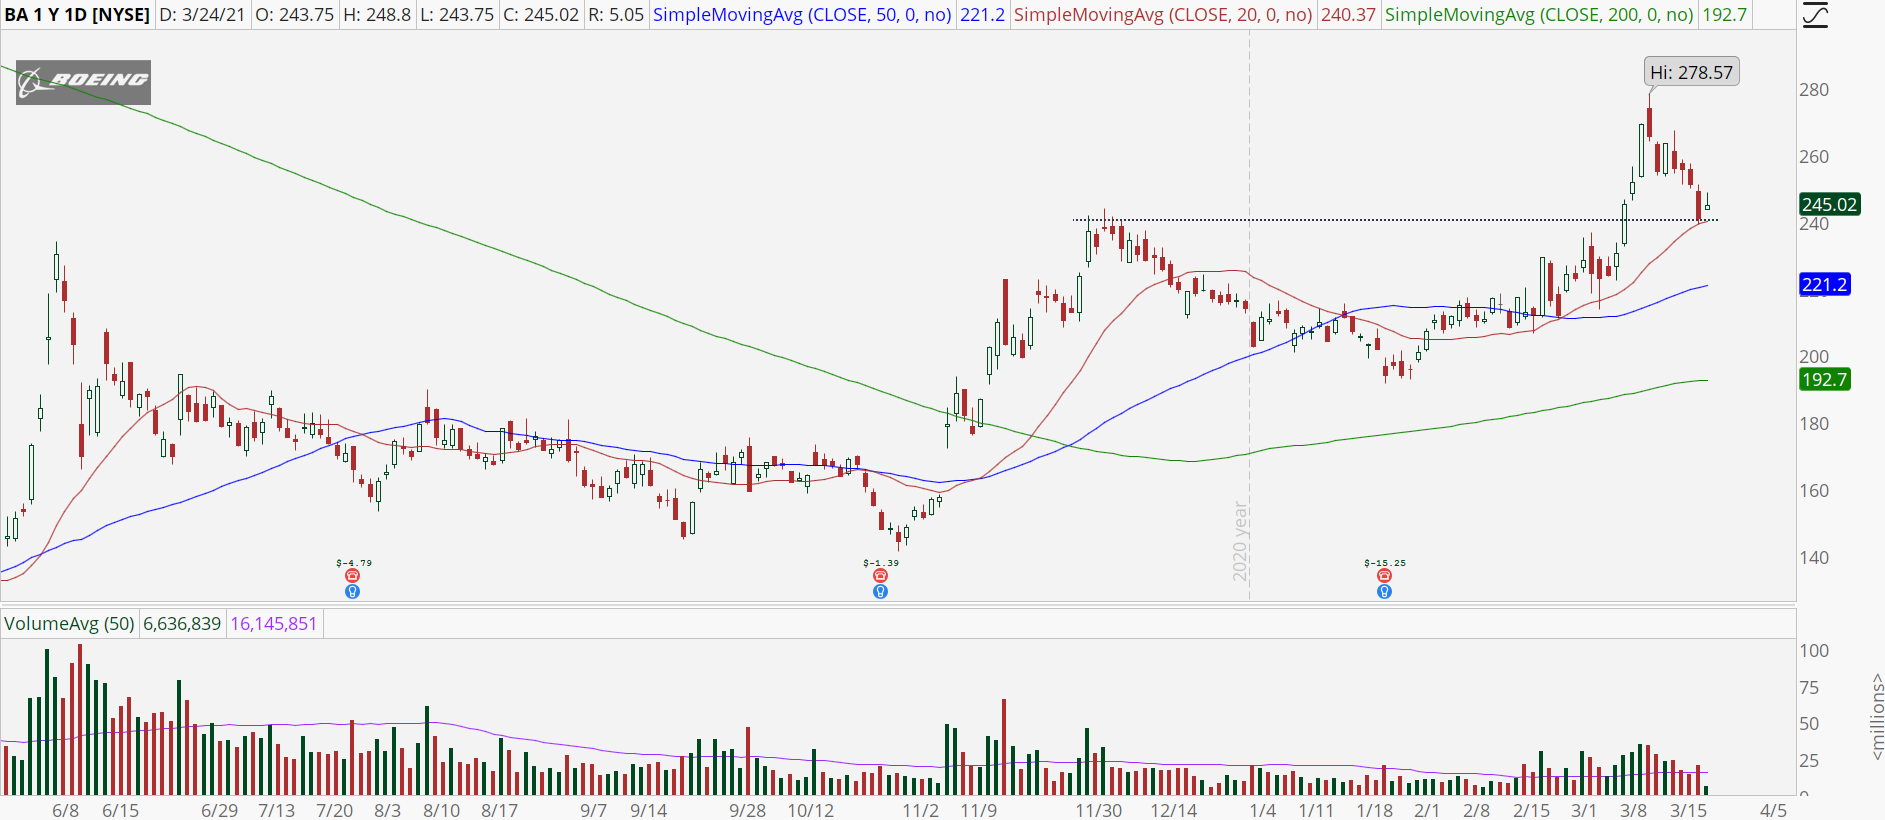 Boeing (BA) stock with bull retracement